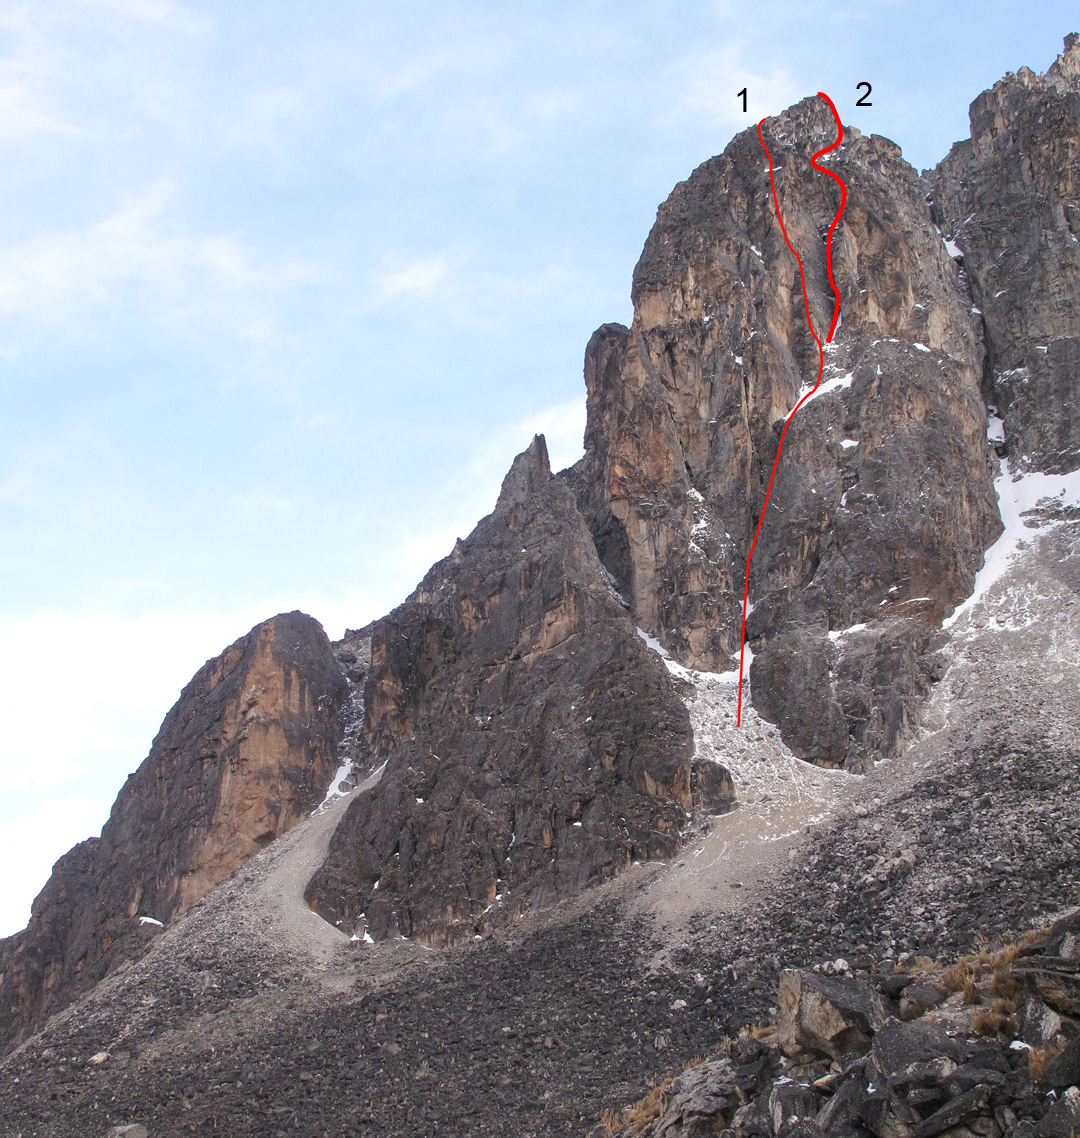 The south face of one of the western summits of Khala Cruz. (1) Condores y Picaflores. (2) The presumed line of La Muesca.